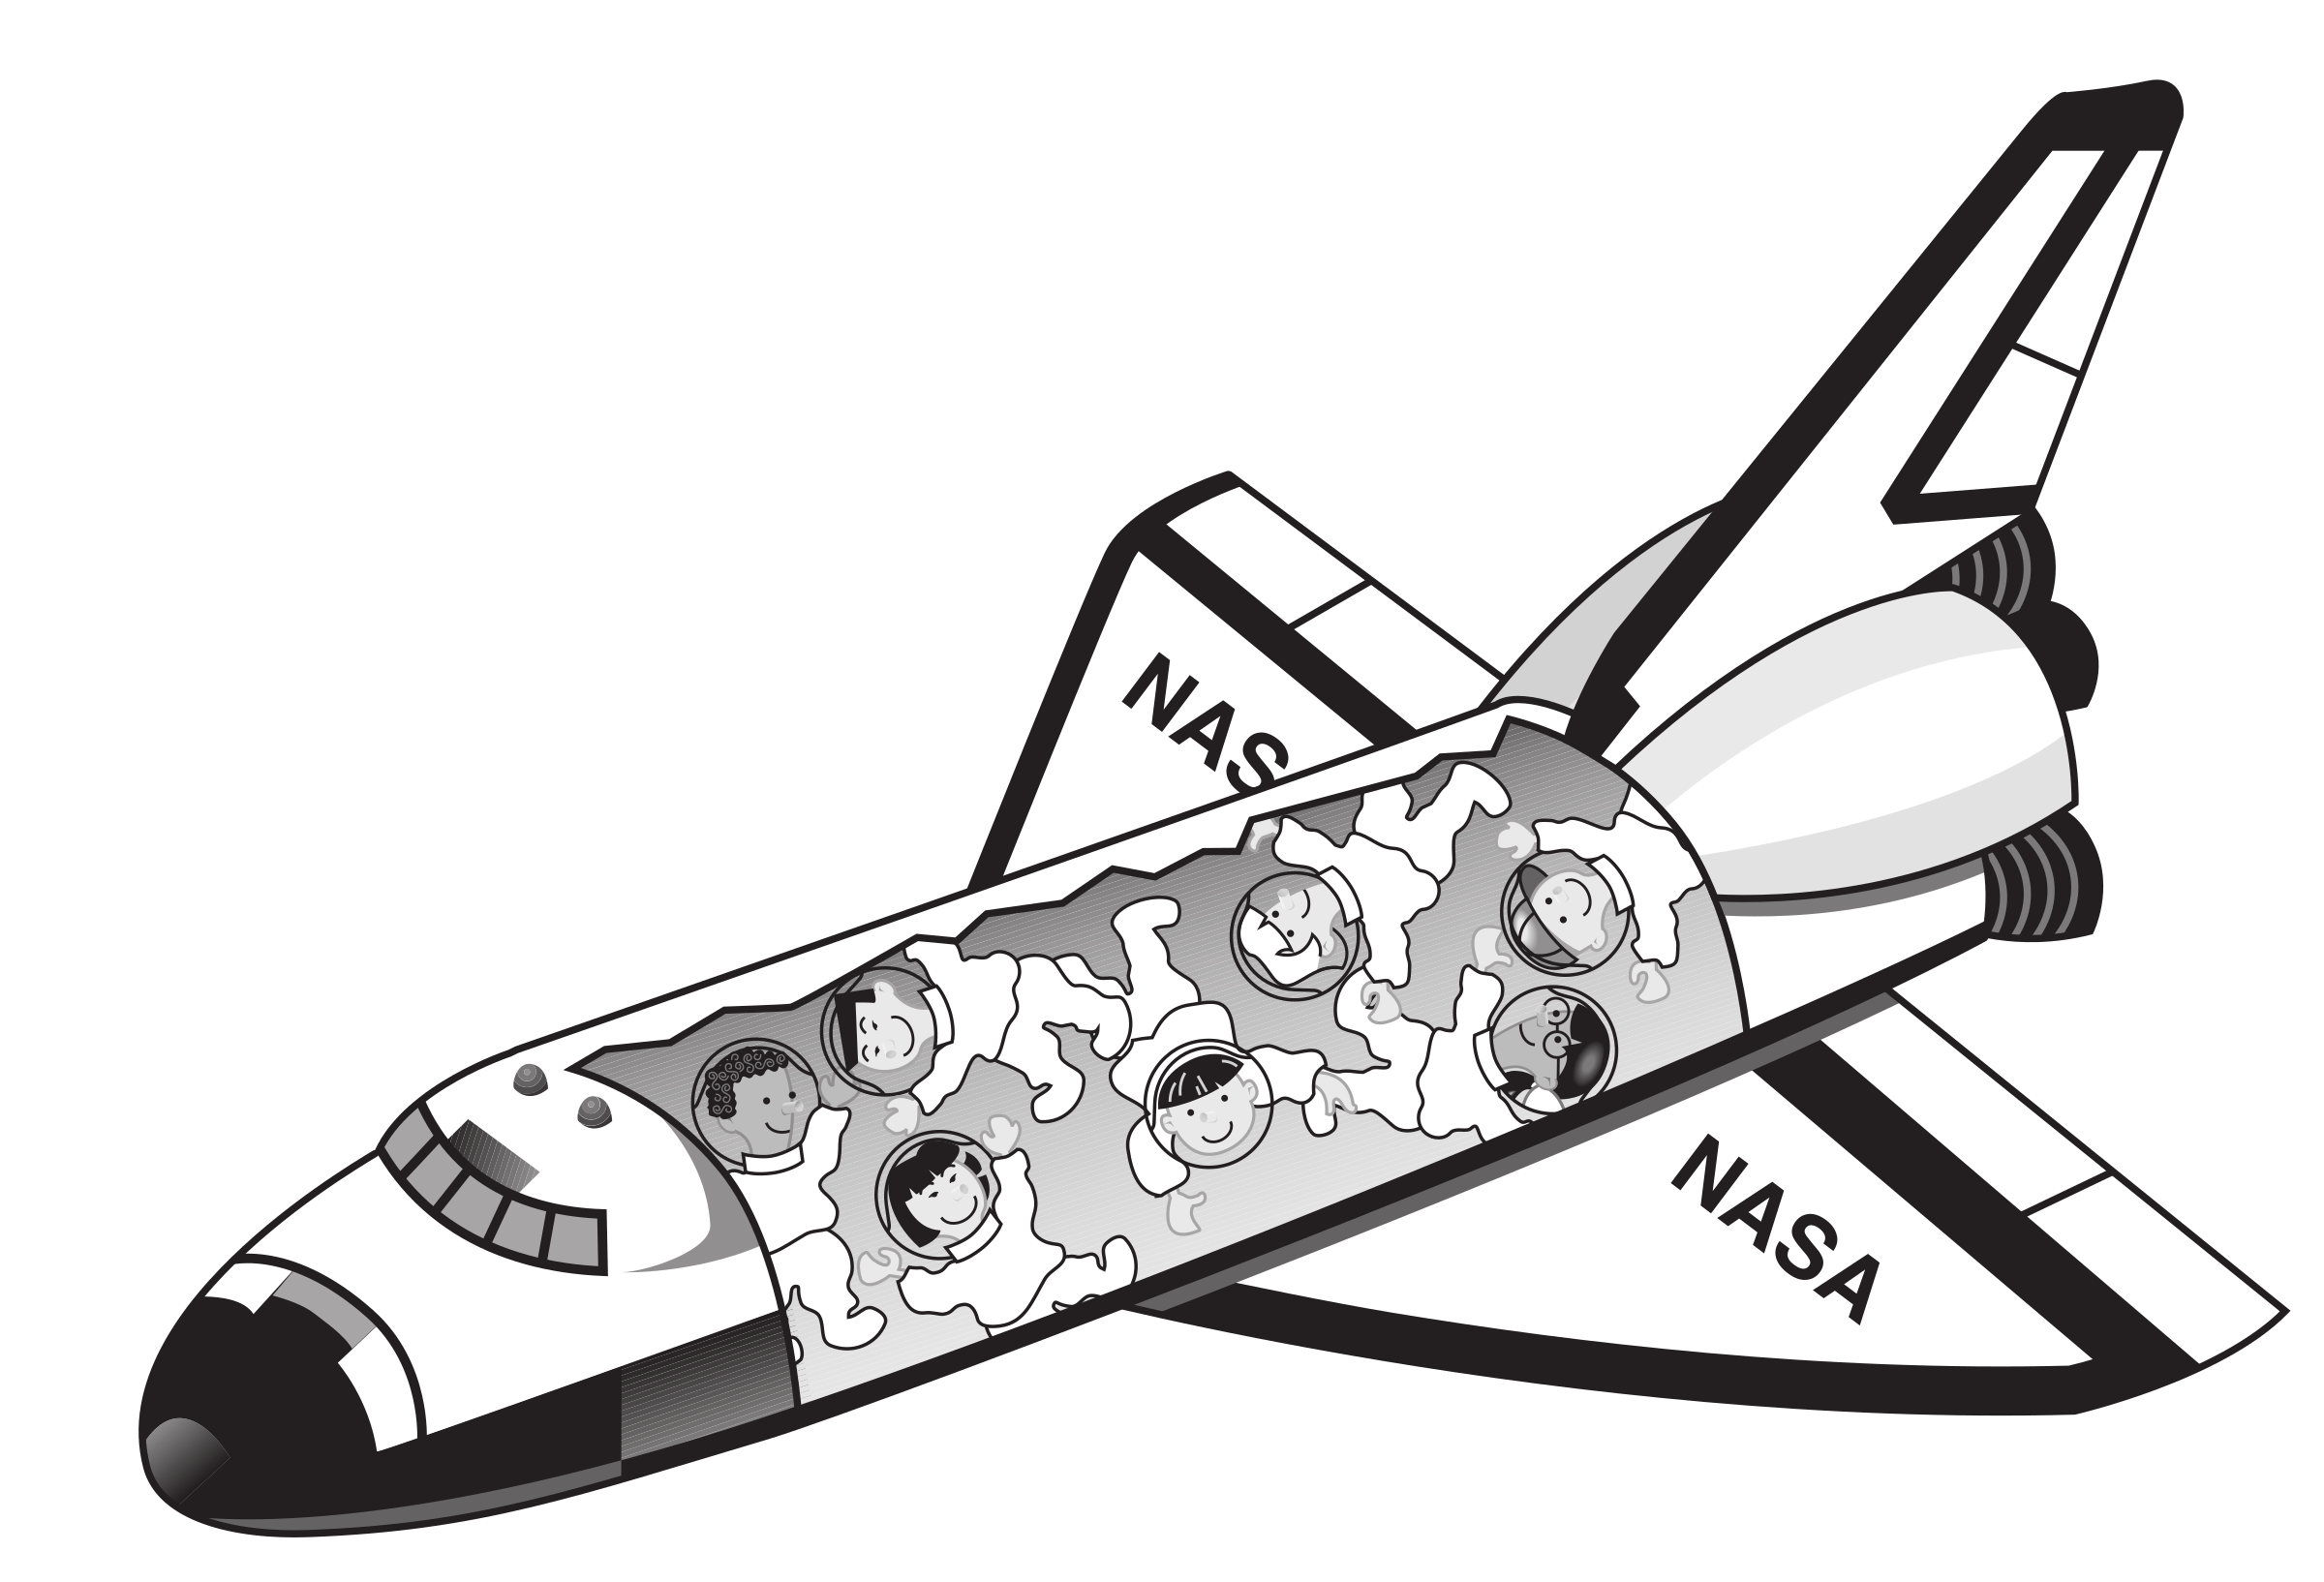 Spaceship clipart spaceship nasa. Space shuttle with astronauts